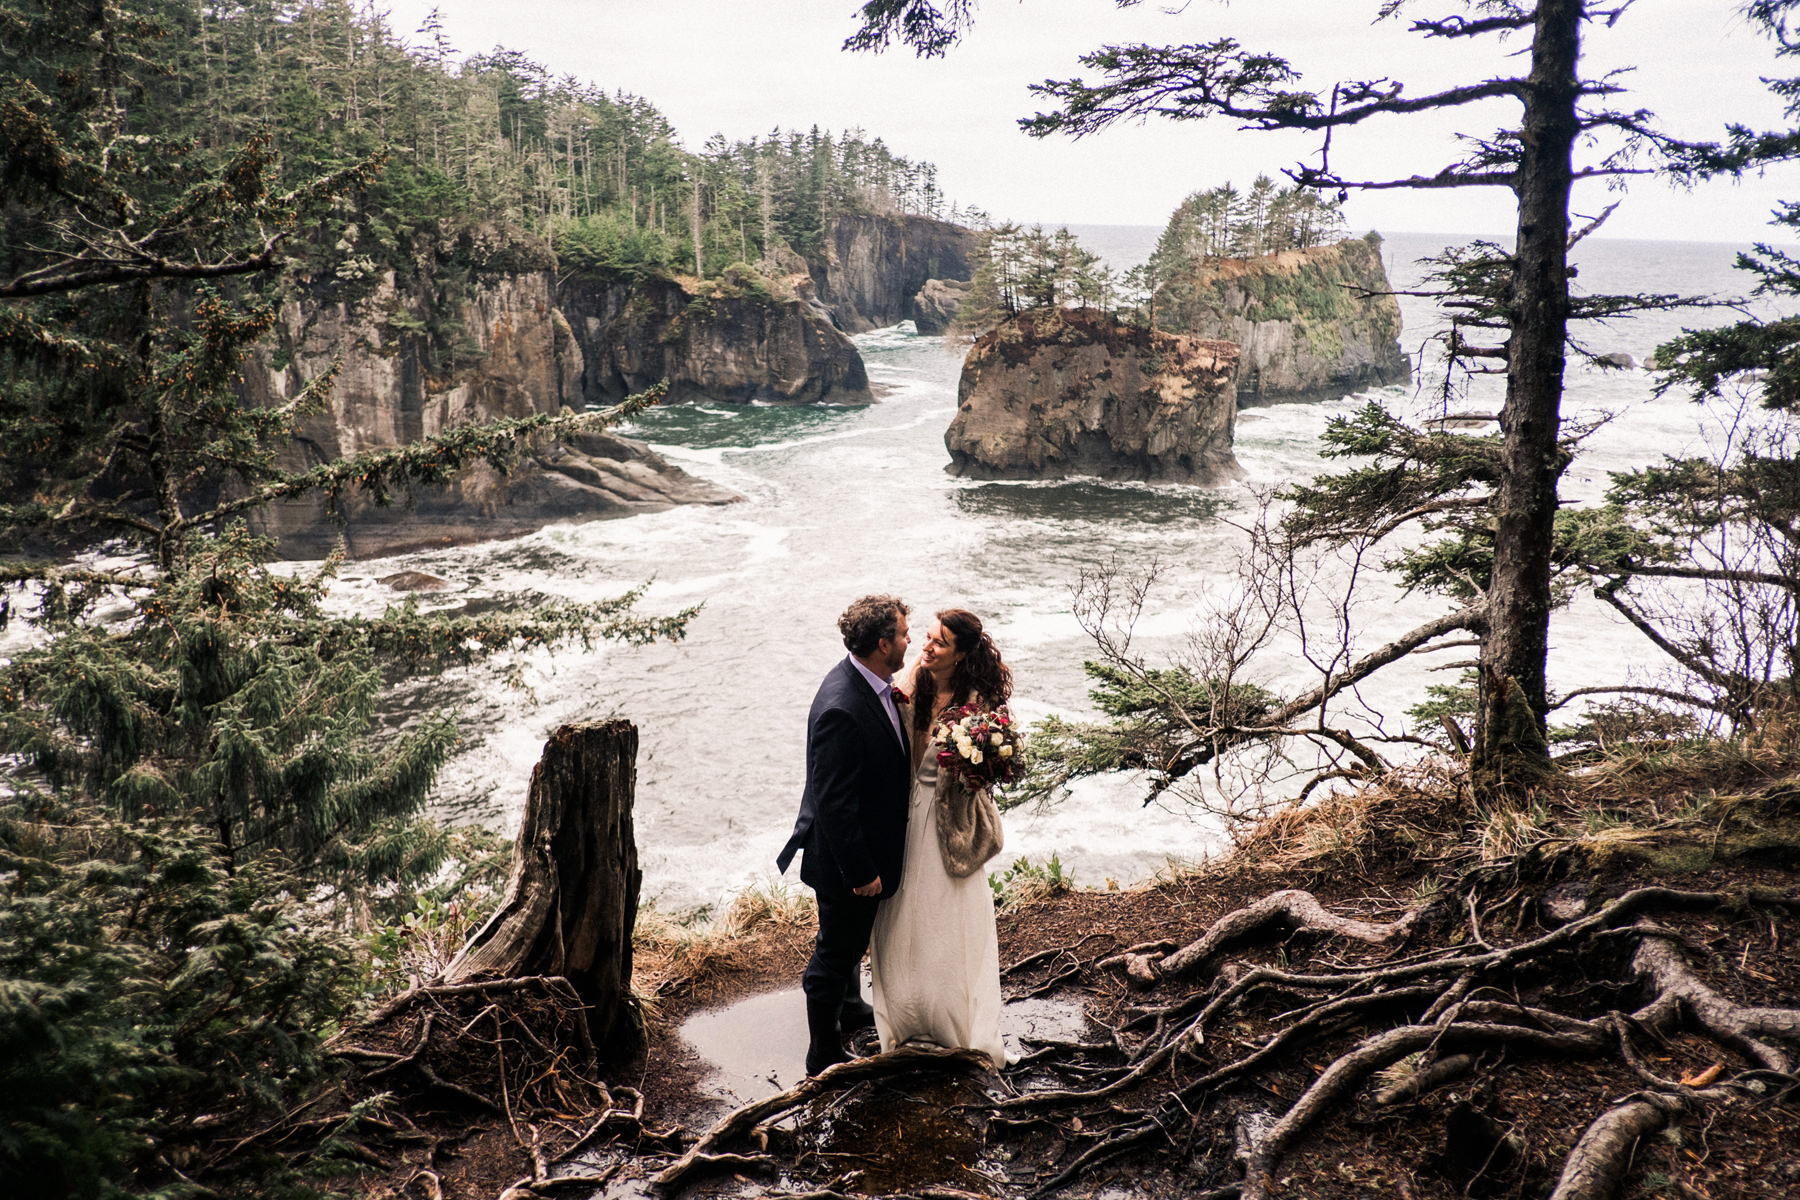 167-cloudy-pnw-elopement-on-film-at-cape-flattery-in-washington.jpg